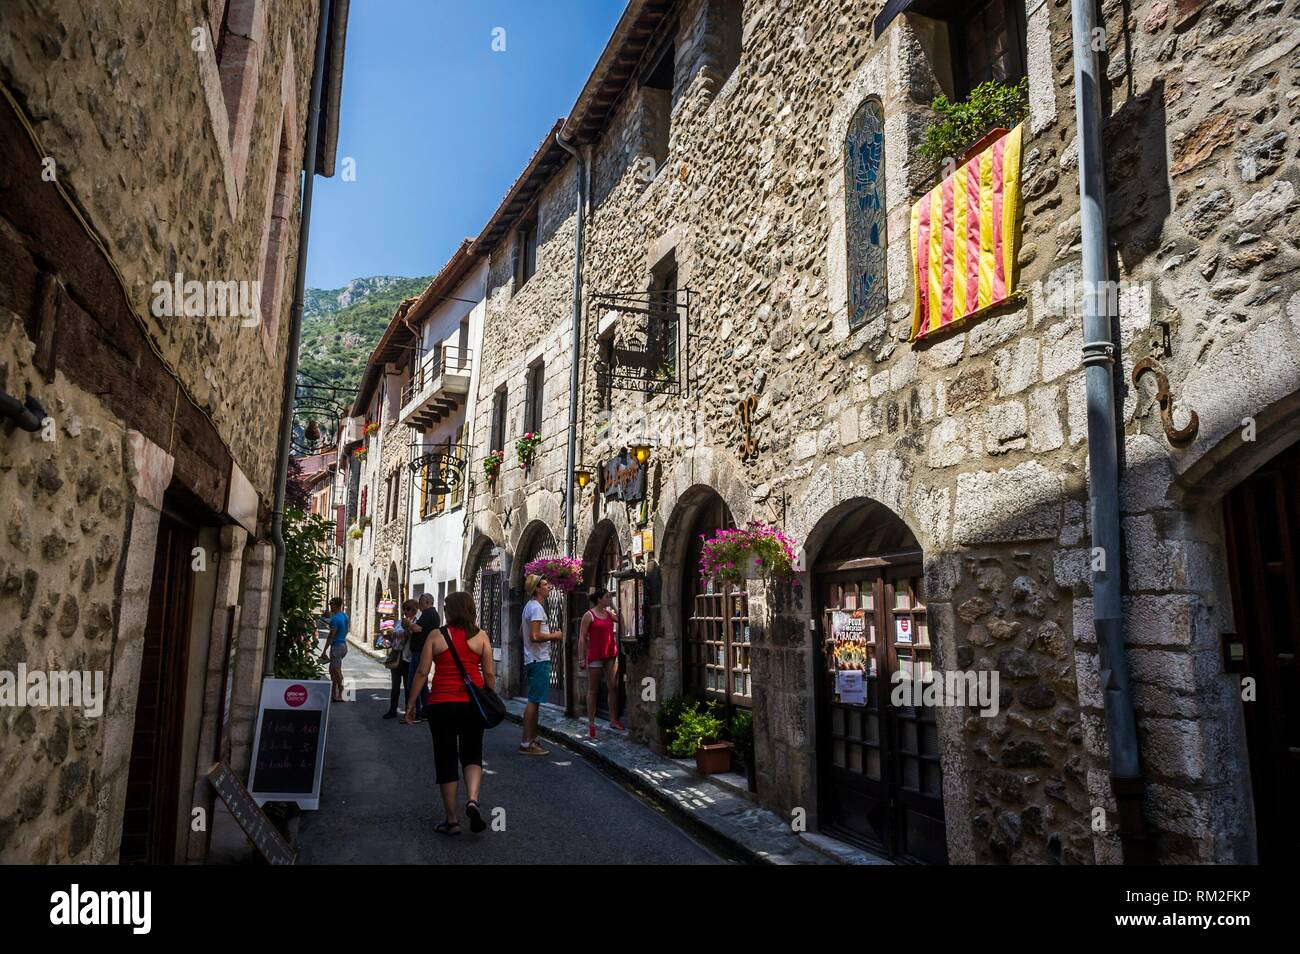 Flag of Roussillon in a medieval street, Villefranche-de-Conflent (department of Pyrénées-Orientales, region of Occitanie, France). - Stock Image